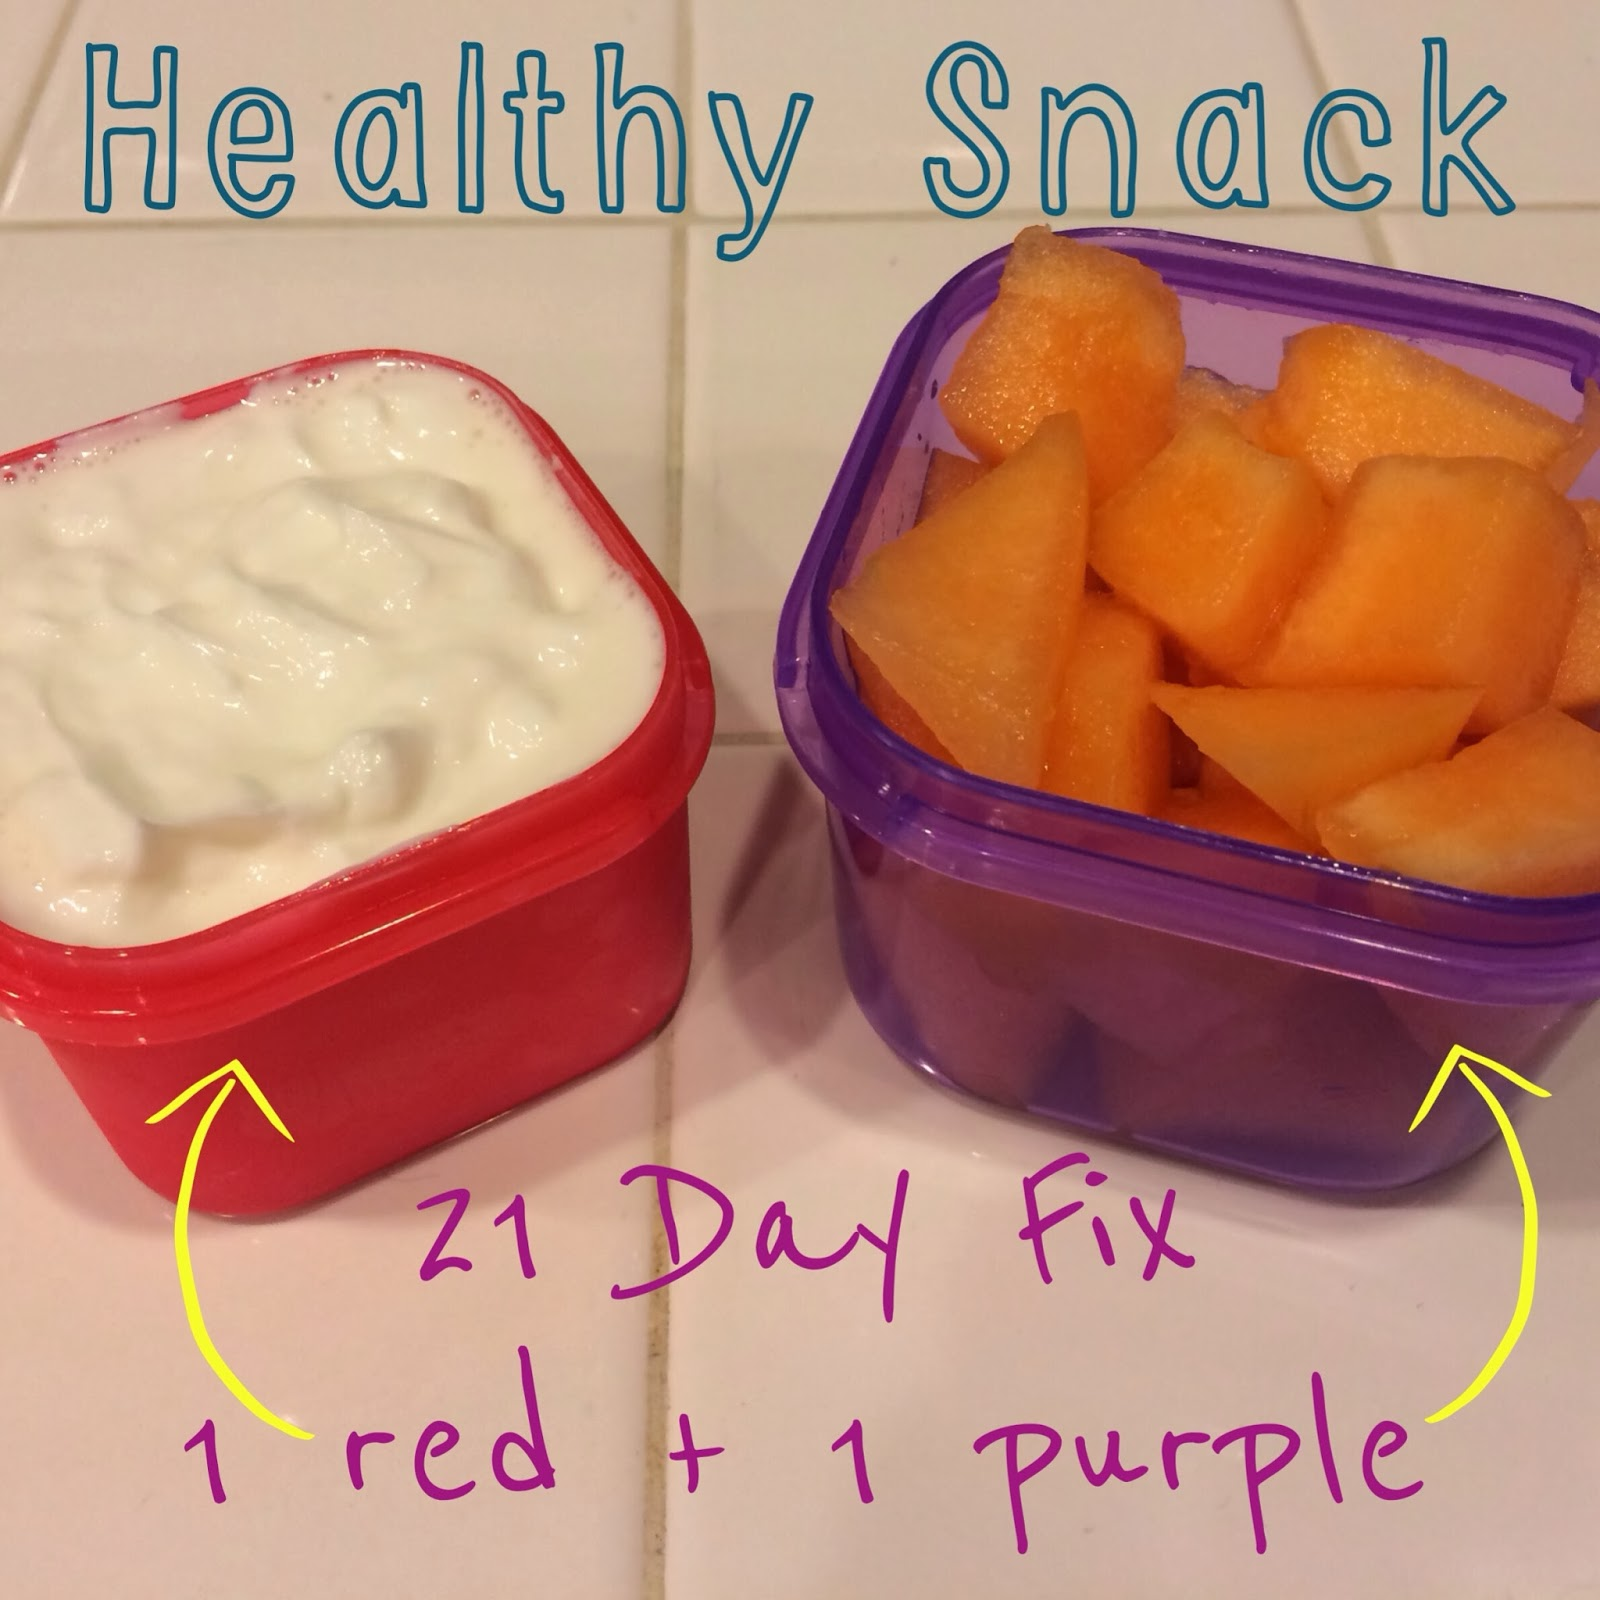 21 Day Fix Snack, 21 Day Fix Menu, www.HealthyFitFocused.com